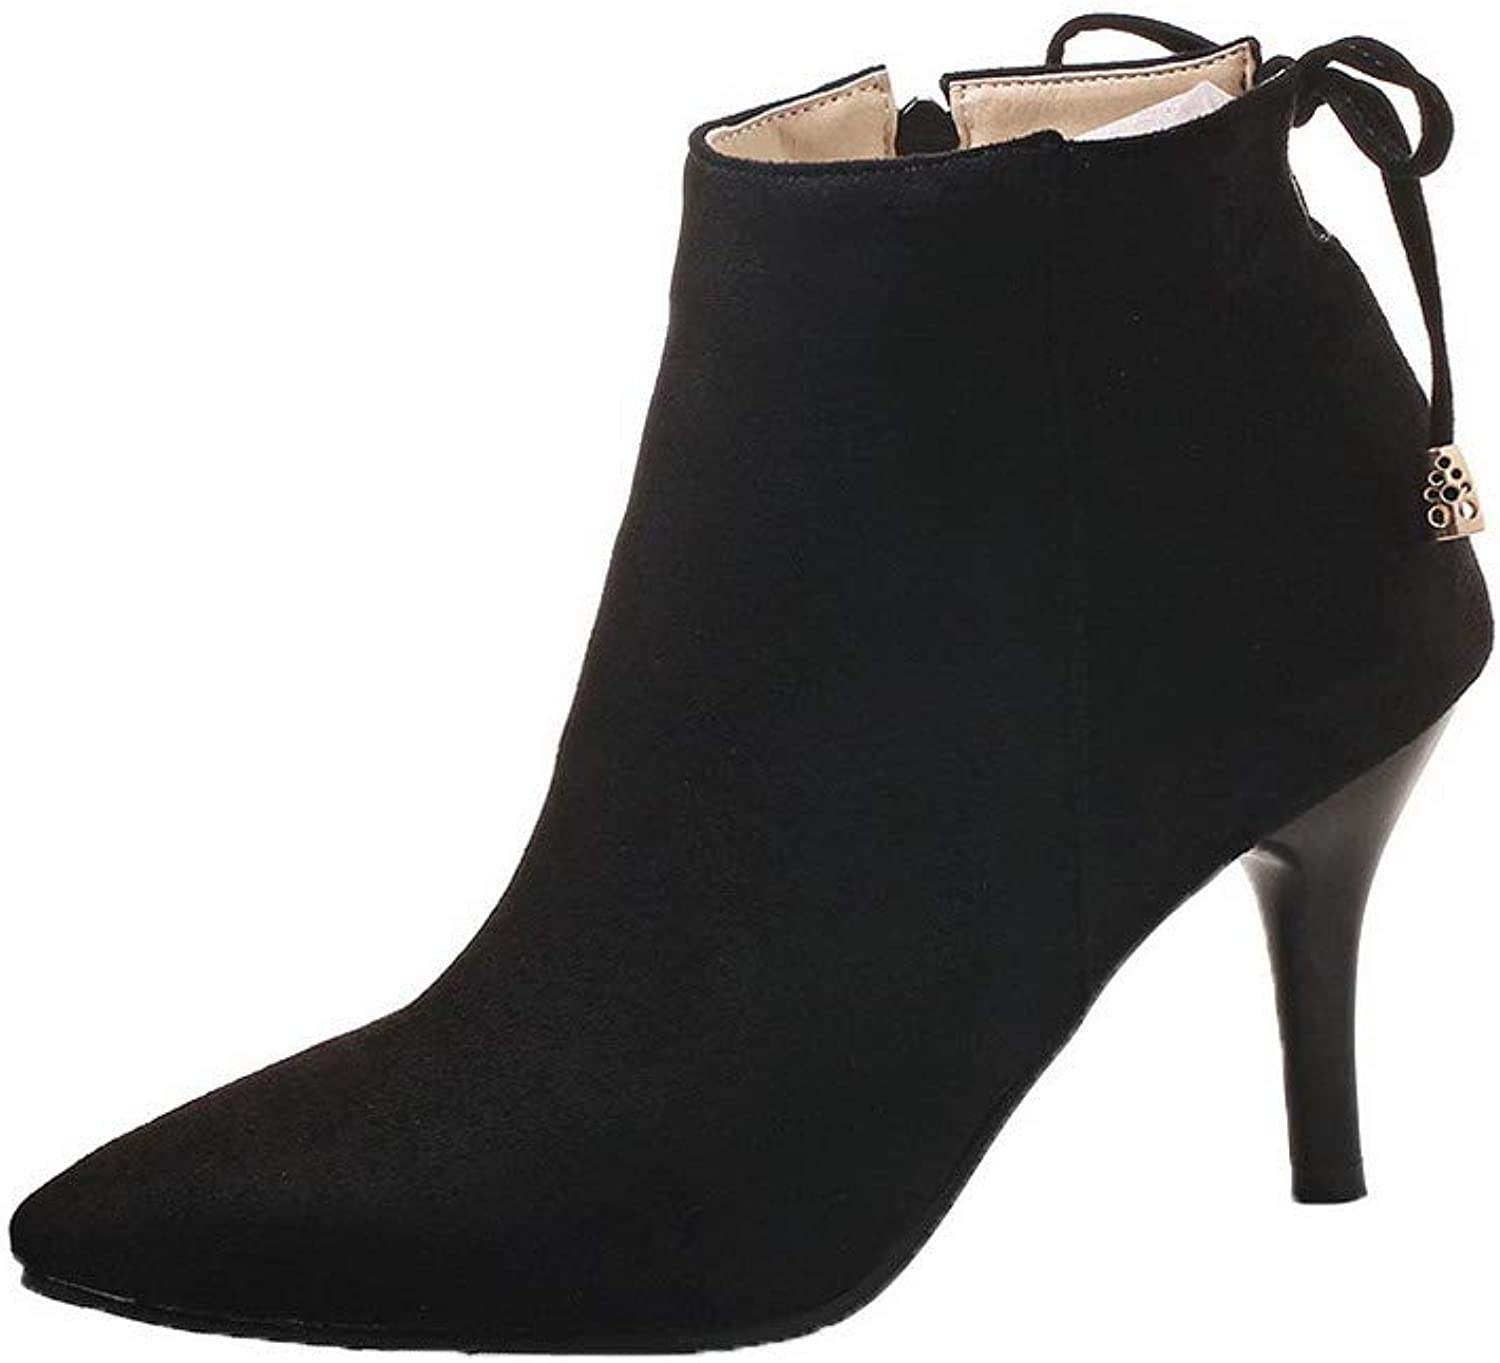 AmoonyFashion Women's Ankle-High Imitated Suede High-Heels Closed-Toe Boots, BUSXT122377